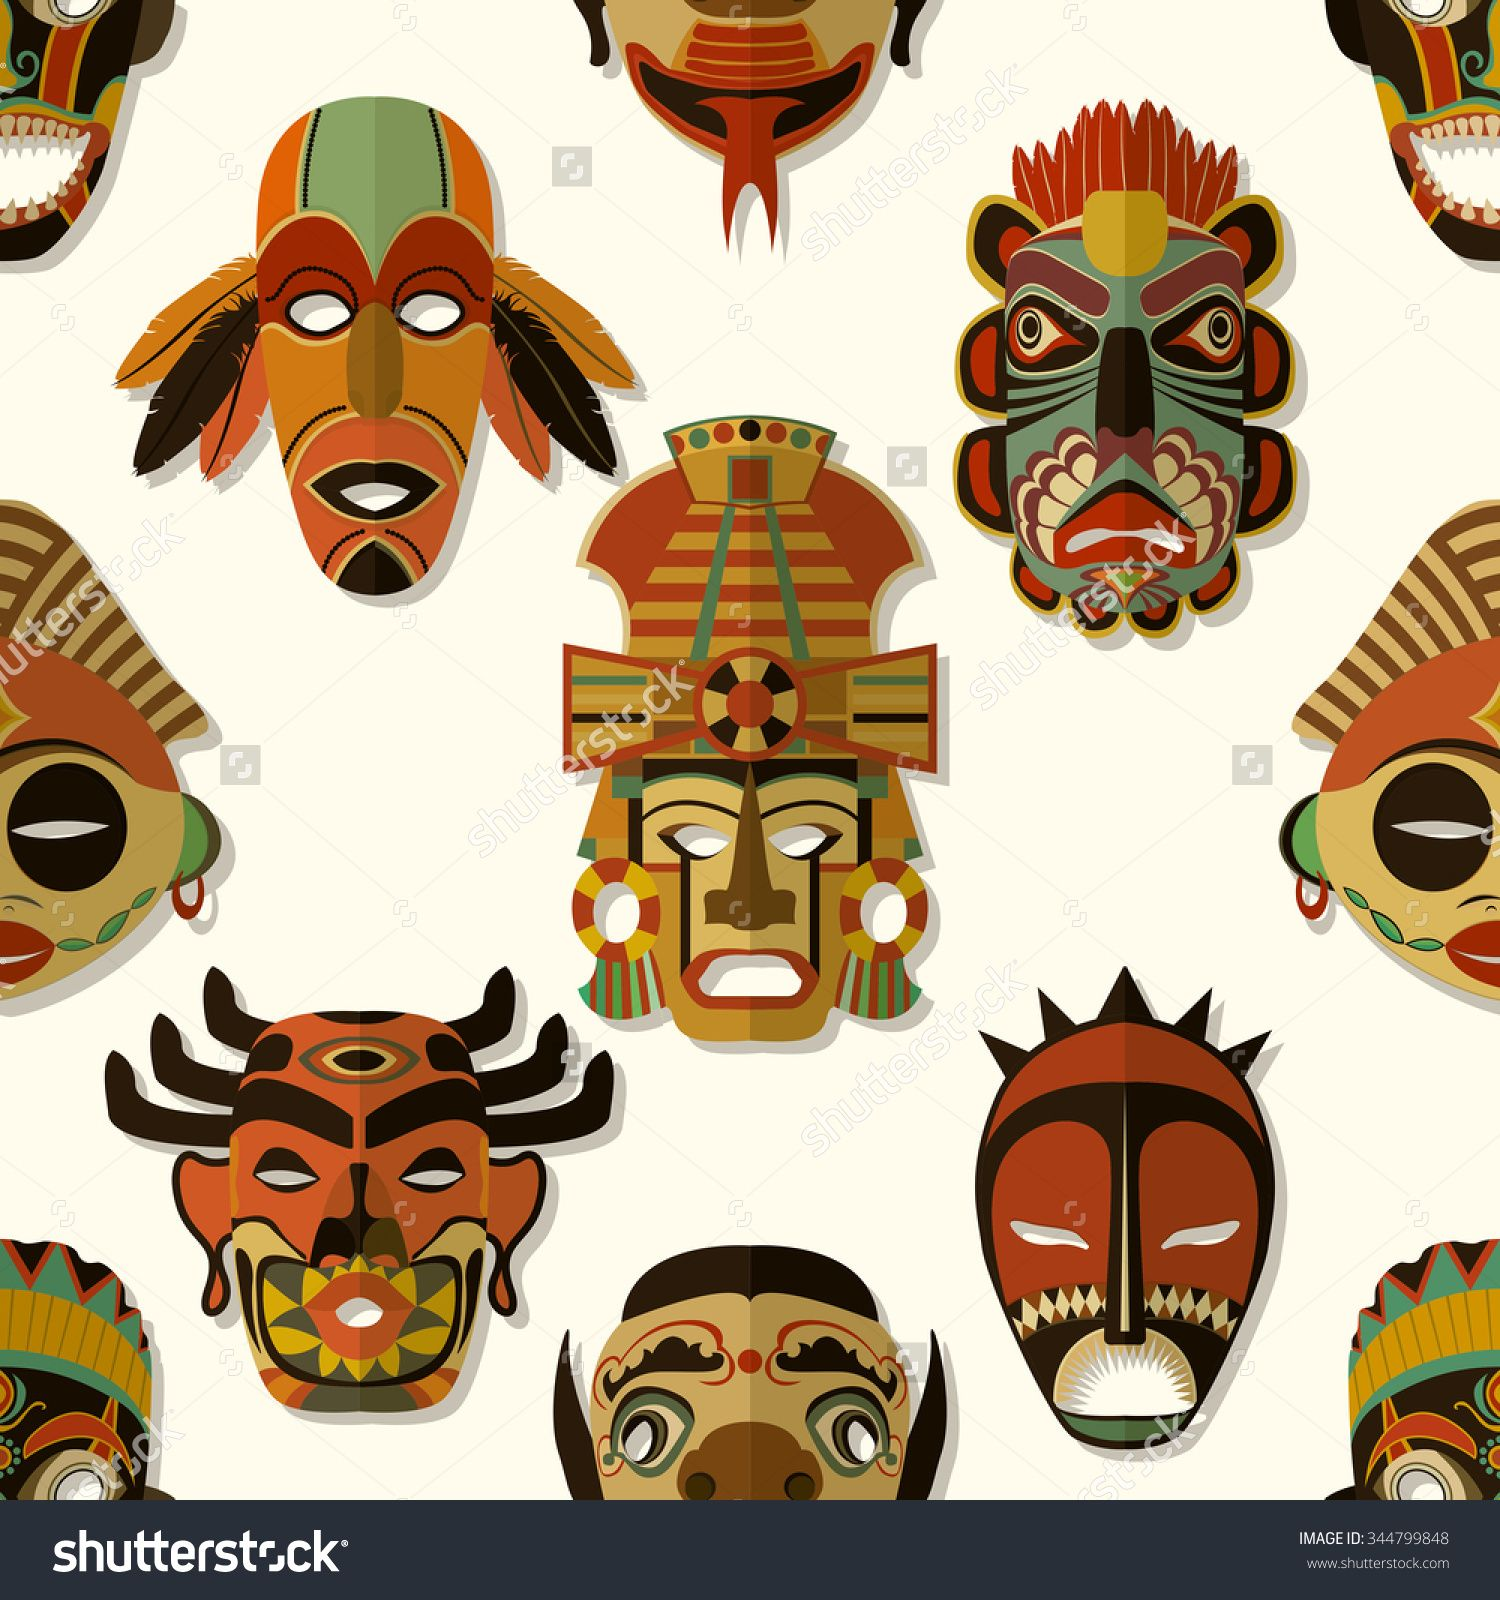 Aborginal masks clipart svg stock Tribal Mask Texture, Seamless pattern design | native american in ... svg stock